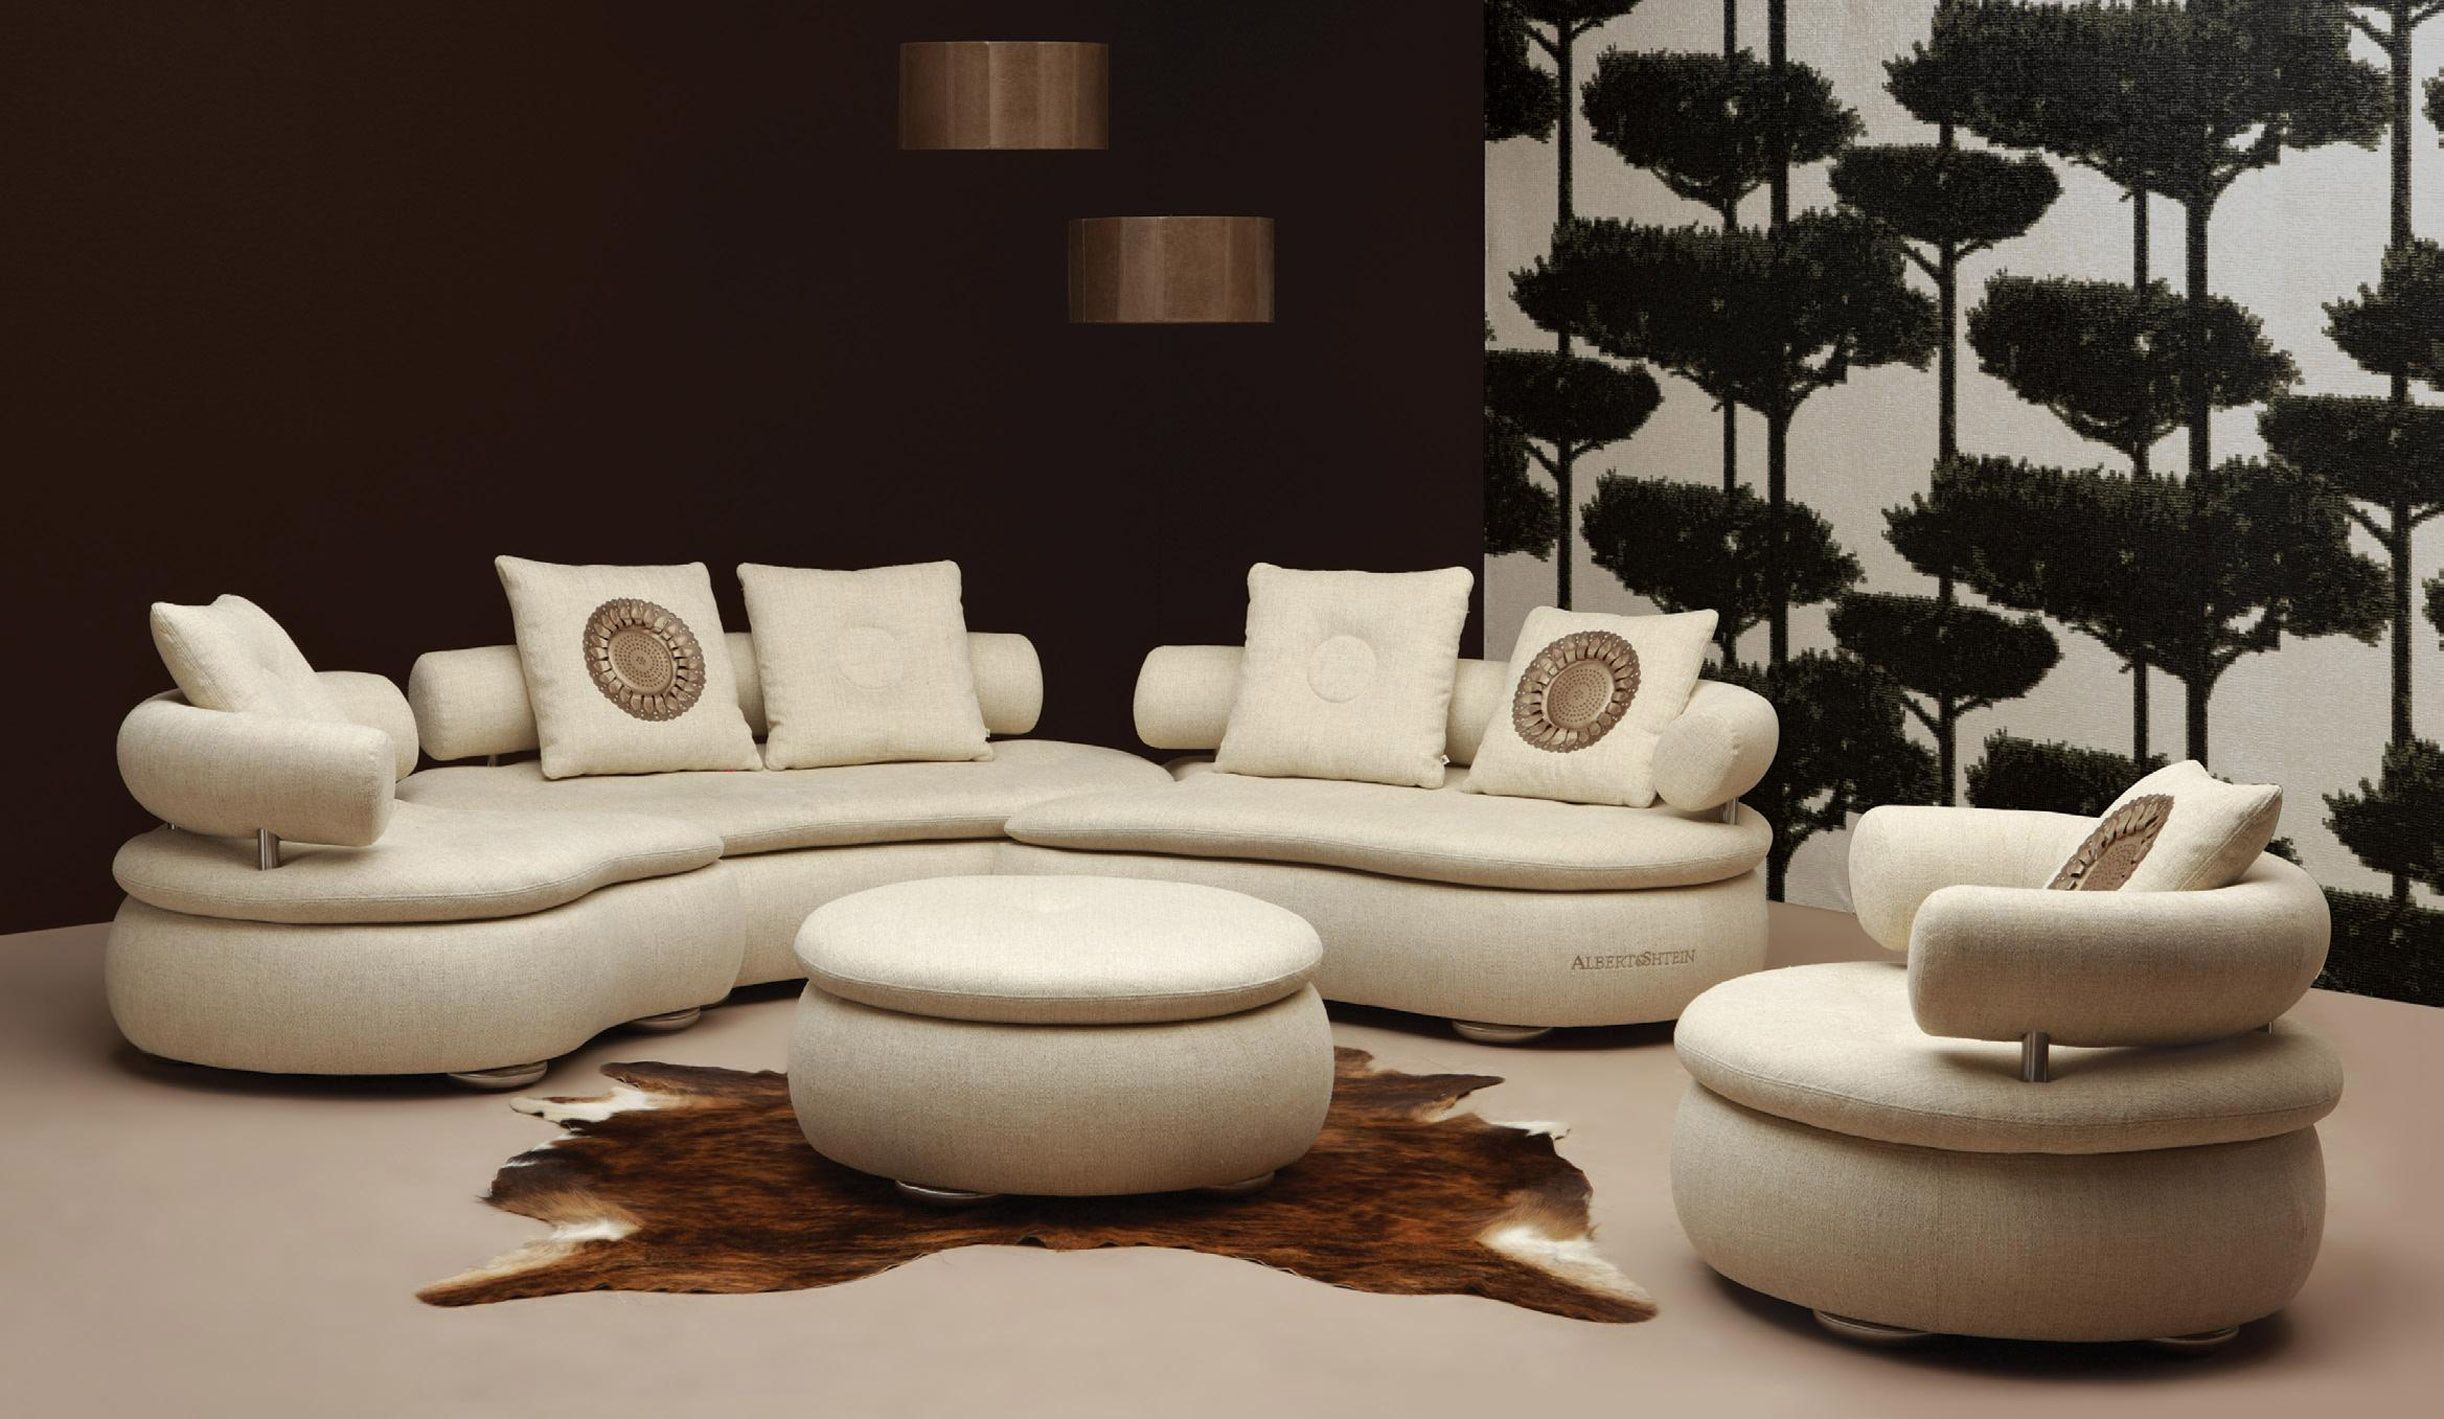 Epic Rounded Sectional Sofa Design In Beige Fabric With Adjustable Back  Rest And Beige Pillows And Round Beige Ottoman